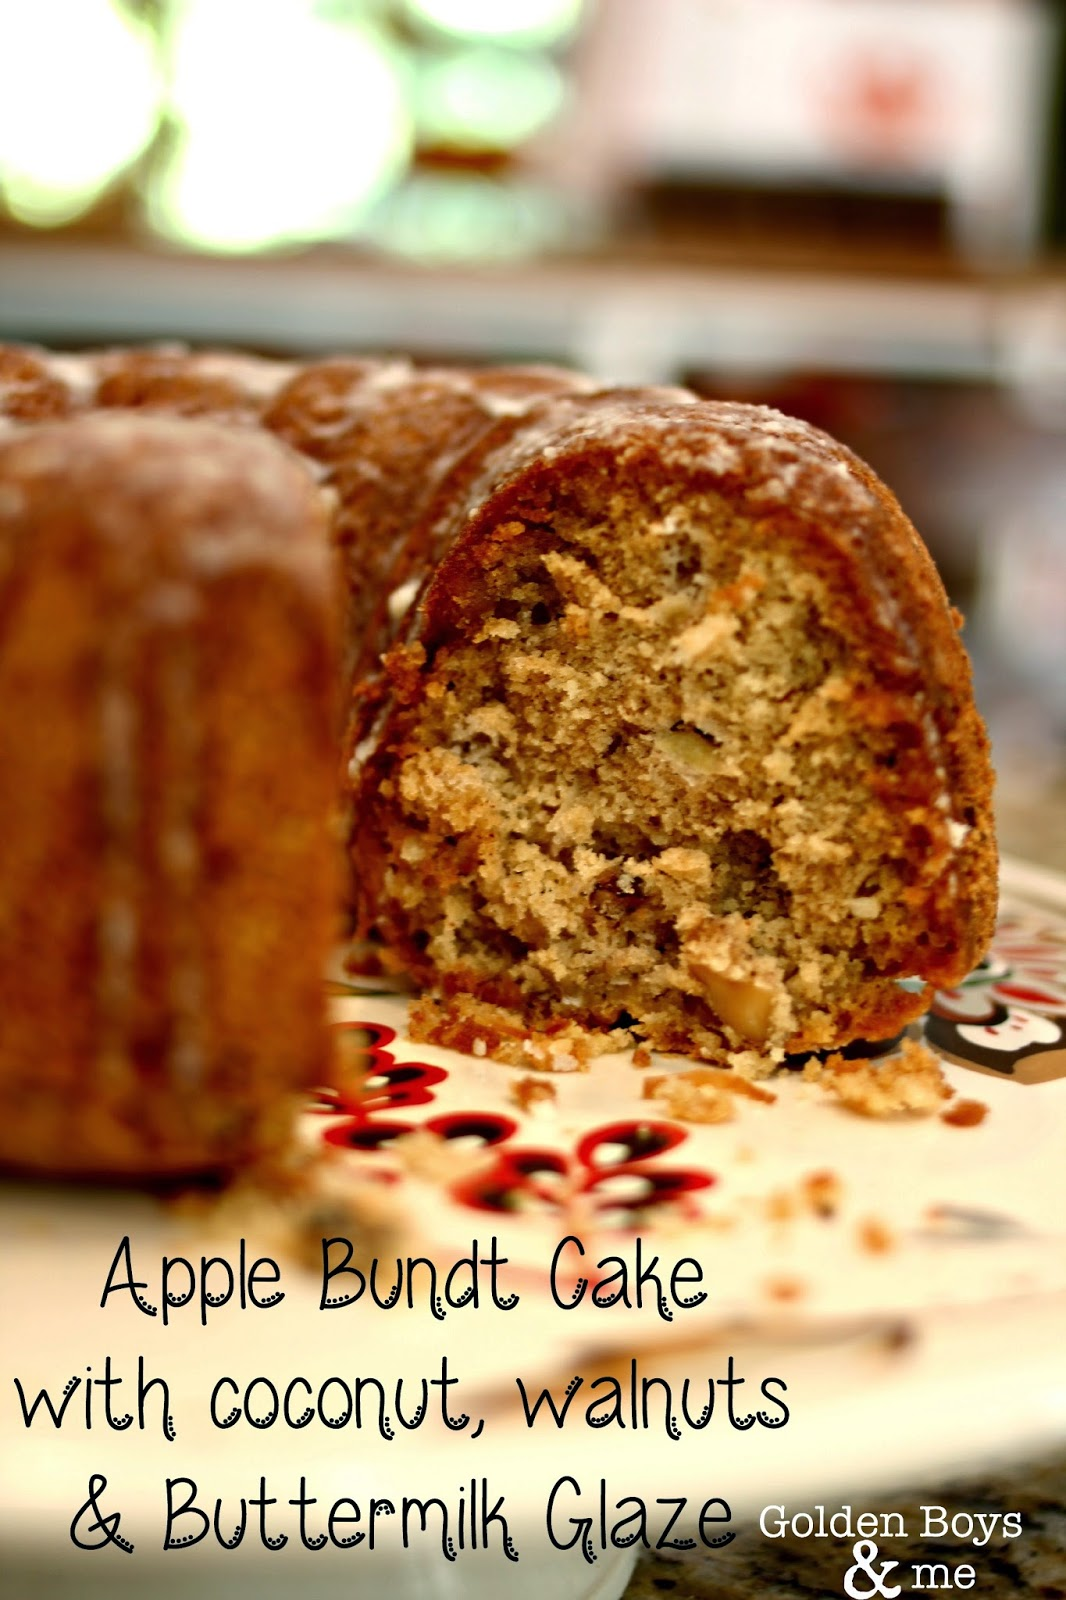 Apple Bundt Cake Recipe with coconut, walnuts and buttermilk glaze